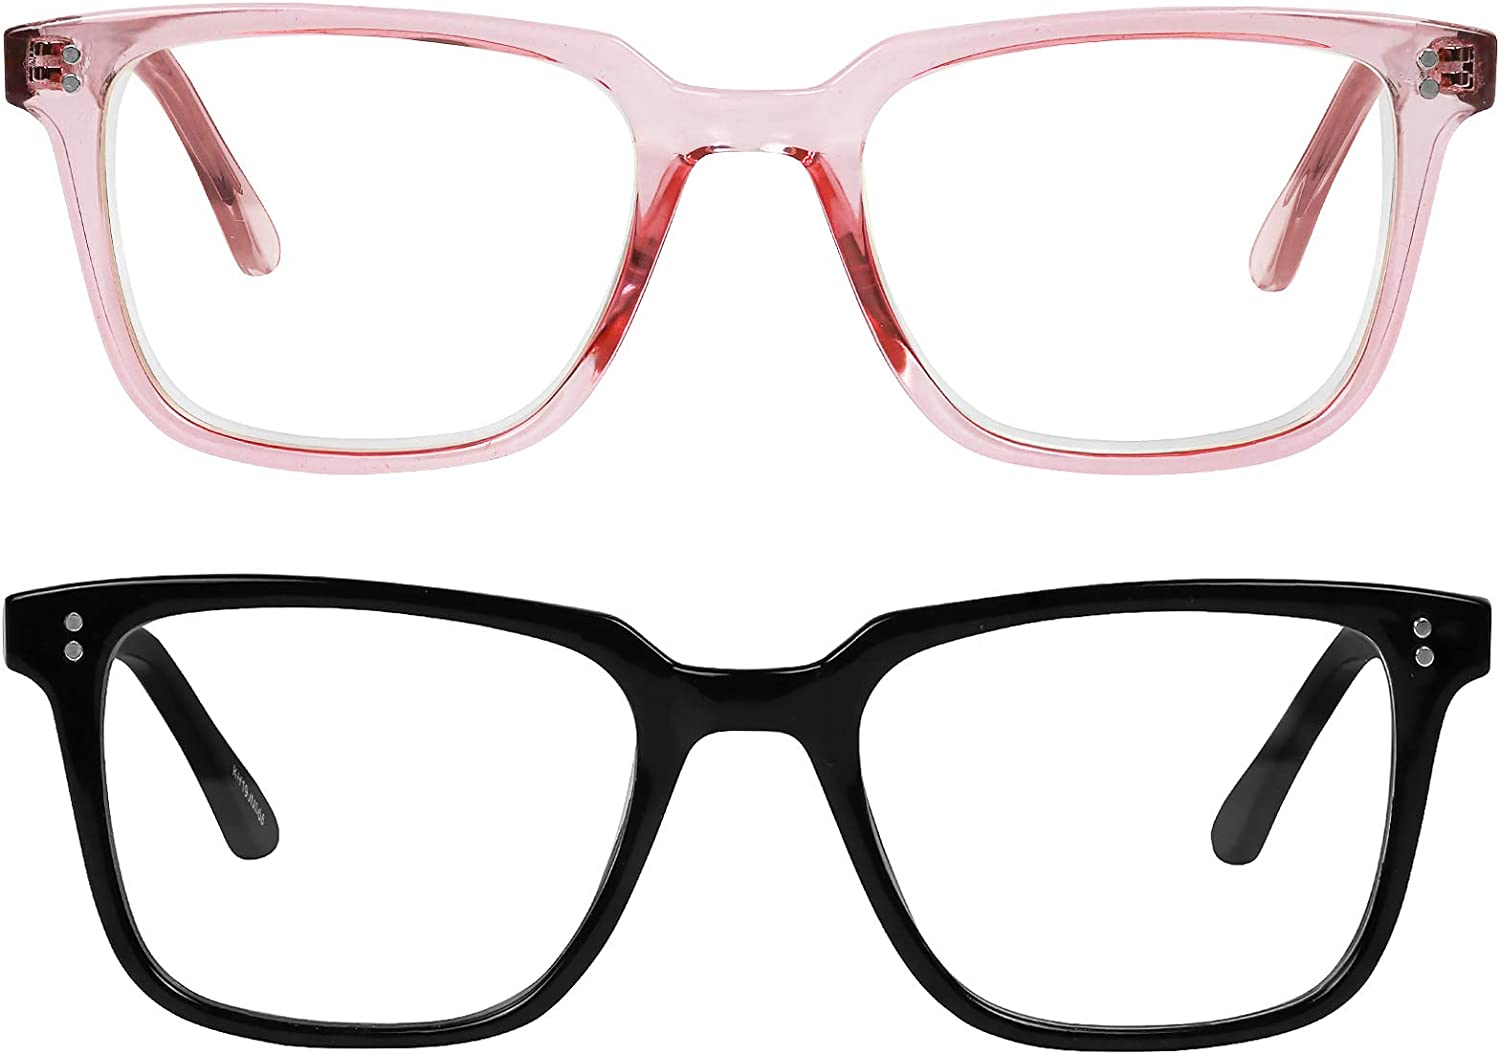 Yogo Vision Blue Light Blocking Glasses Clear Safety Specs for Men & Women Protect Against Eye Strain, Glare from Monitor, Laptop, Phone - Office, Work, Gaming Eyewear - Set of 2